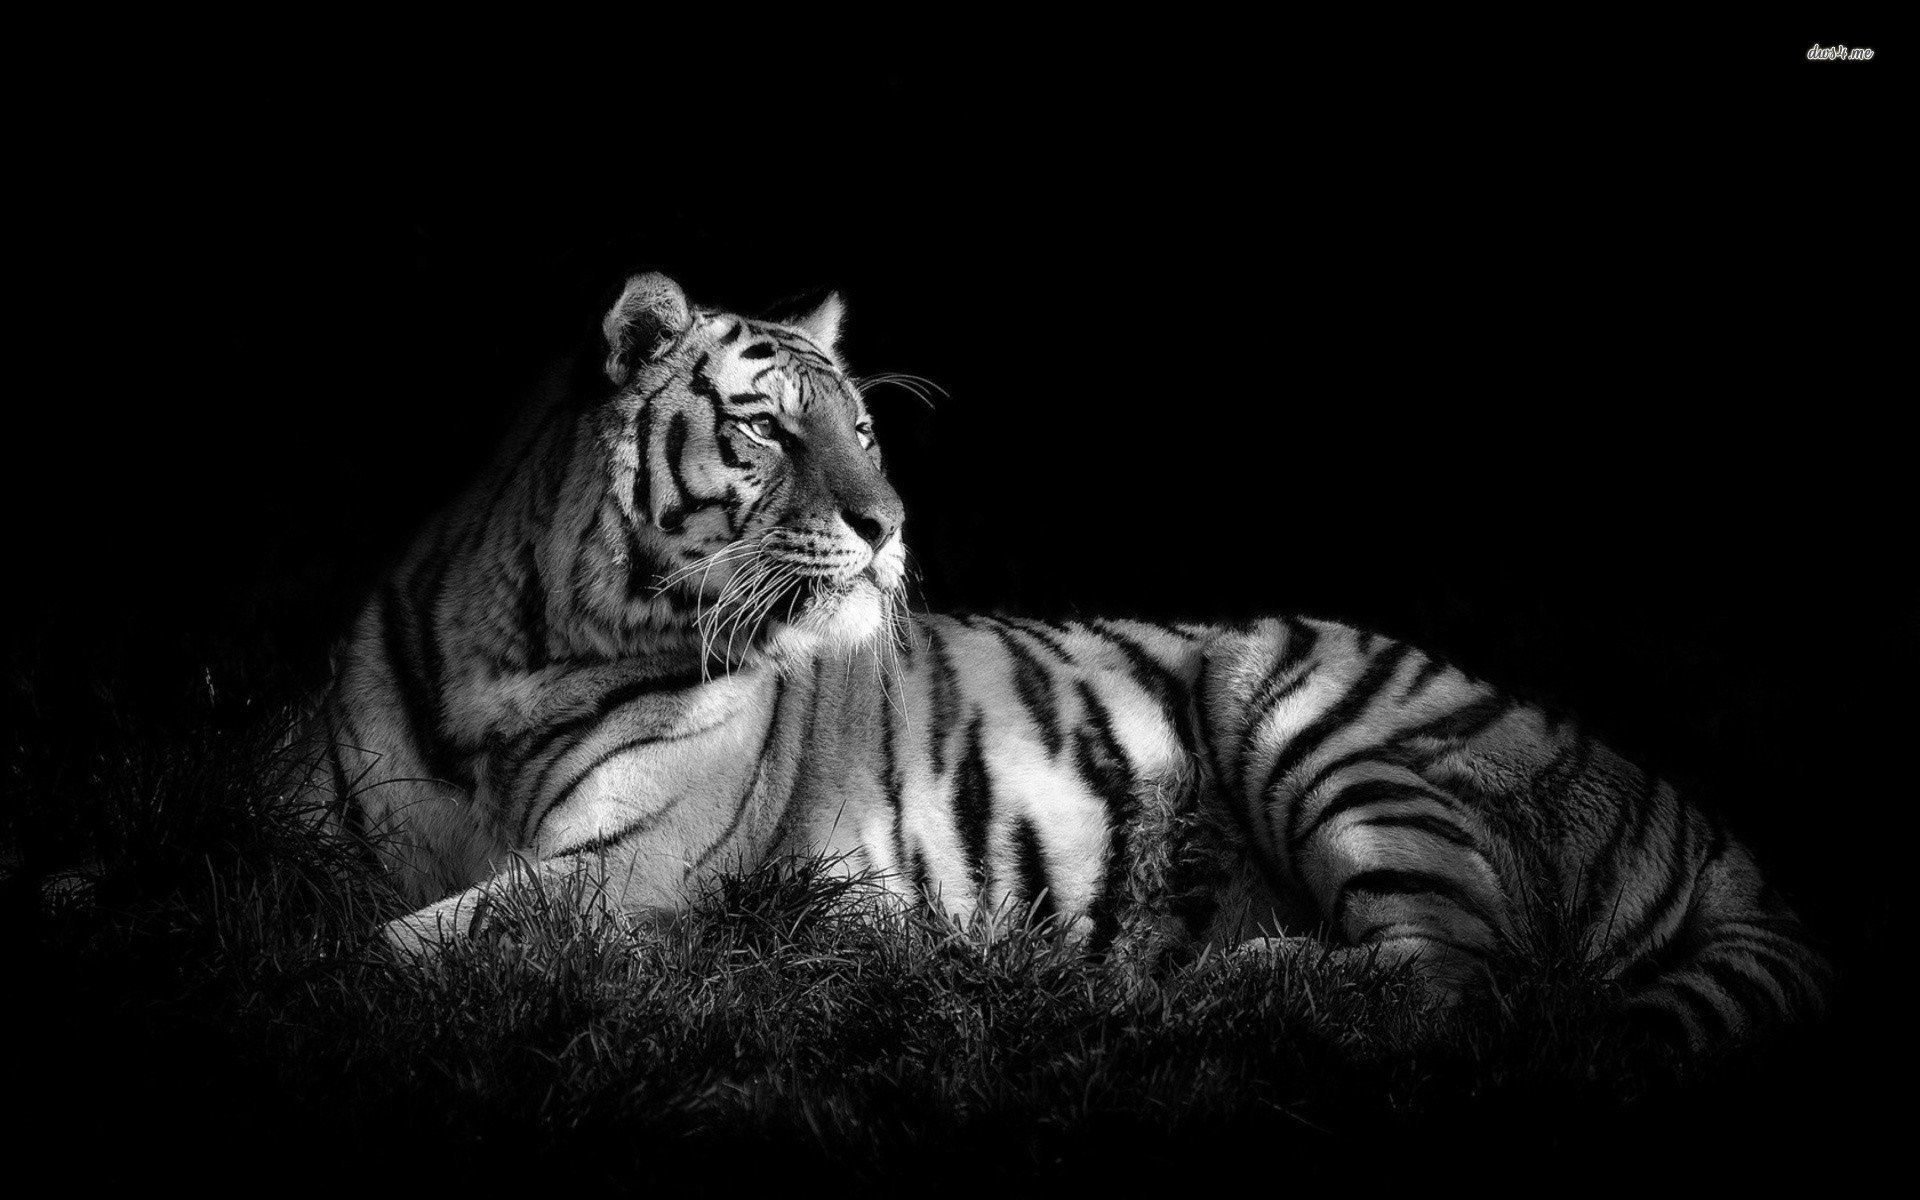 Black And White Tiger Hd Wallpaper Tiger Wallpaper White Tiger White Tiger Pictures